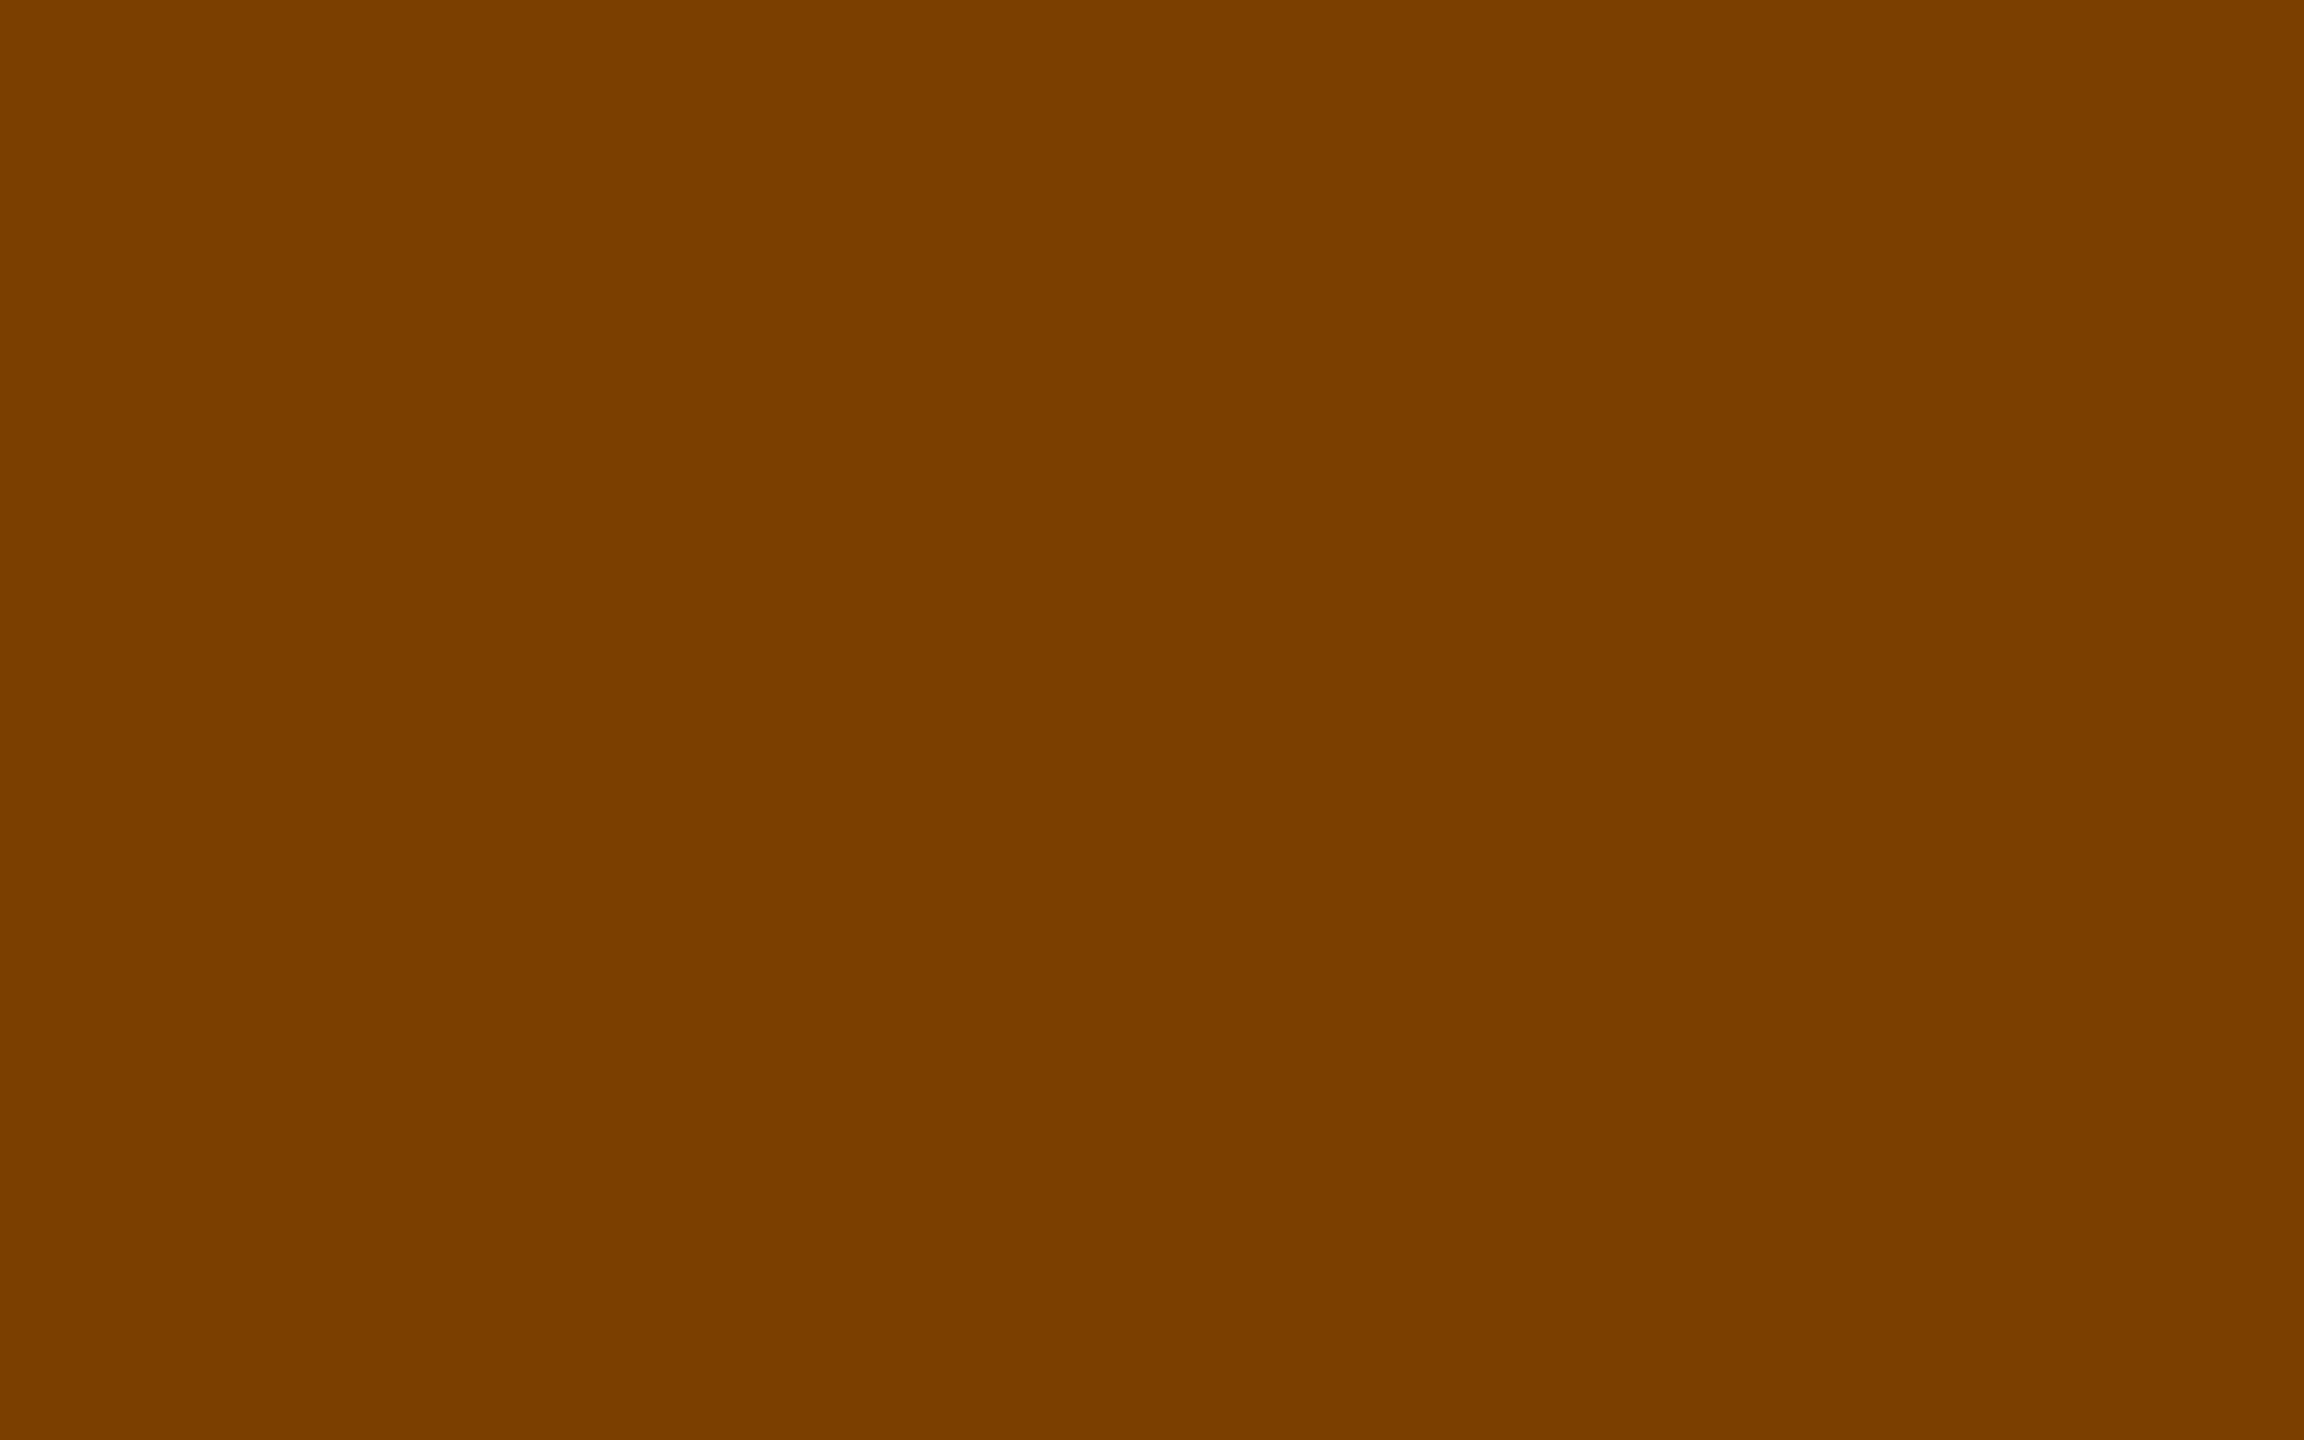 2304x1440 Chocolate Traditional Solid Color Background